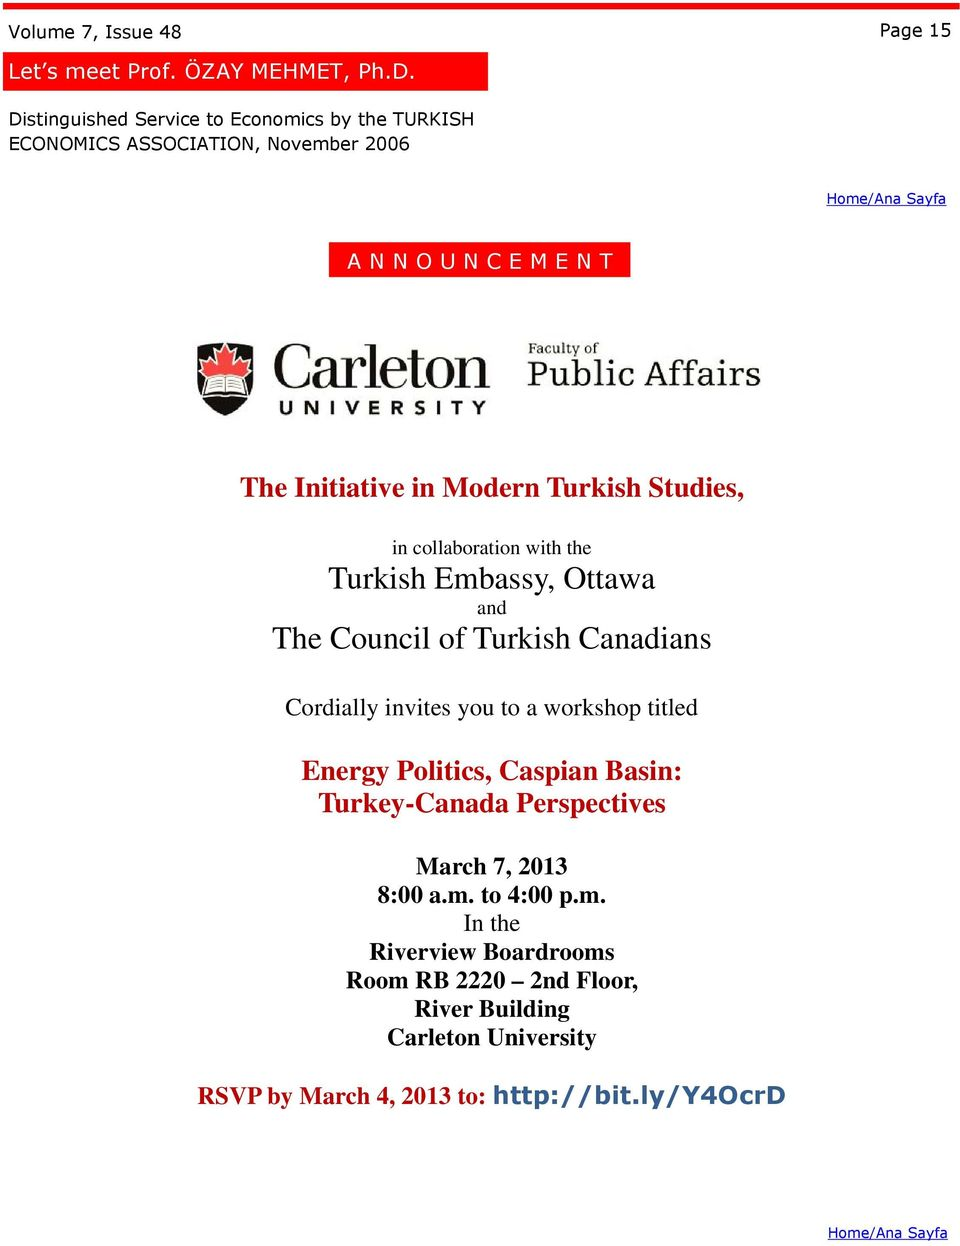 Studies, in collaboration with the Turkish Embassy, Ottawa and The Council of Turkish Canadians Cordially invites you to a workshop titled